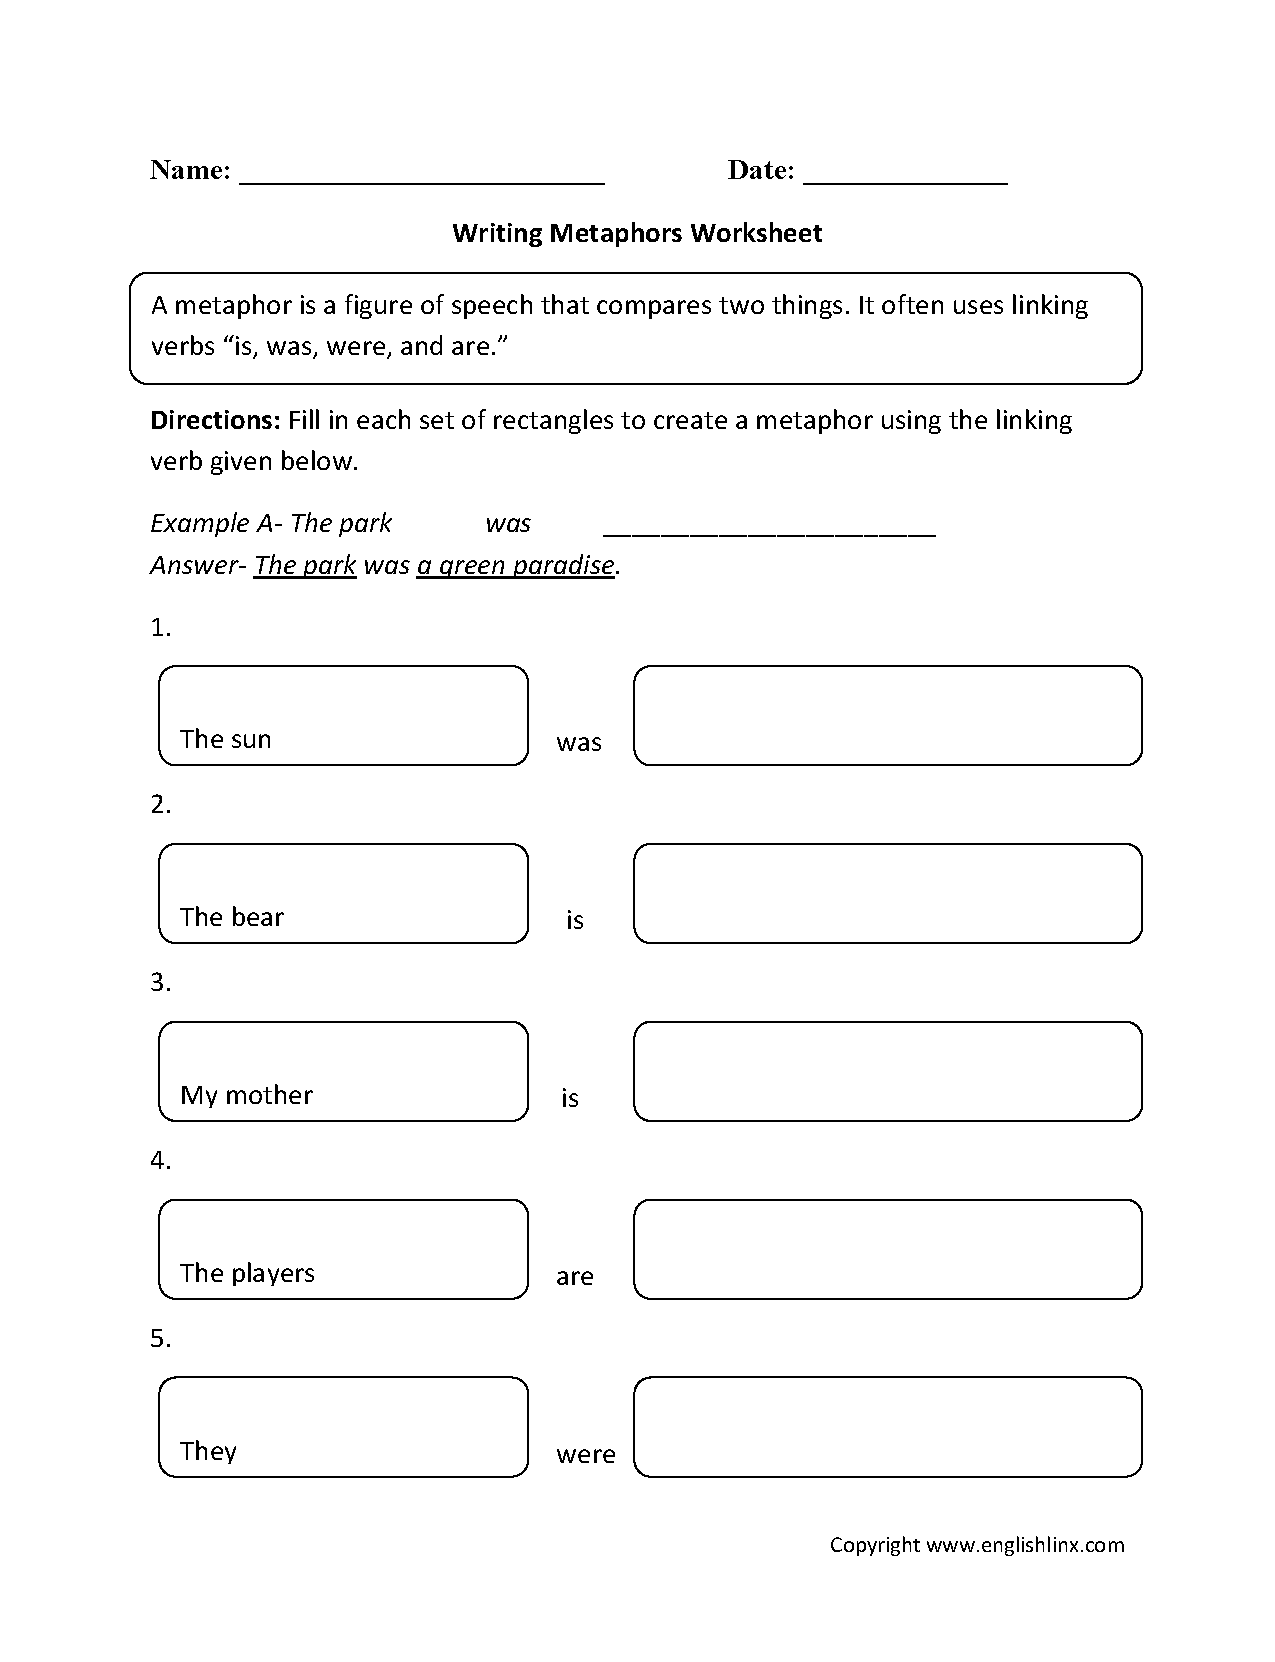 Aldiablosus  Stunning Englishlinxcom  Metaphors Worksheets With Engaging Worksheet With Amusing Everyday Math Nd Grade Worksheets Also Free Printable Animal Worksheets In Addition Water Cycle For Kids Worksheets And Digraph Ph Worksheets As Well As Earth Sun And Moon Worksheets Additionally Geometry Worksheets For Kindergarten From Englishlinxcom With Aldiablosus  Engaging Englishlinxcom  Metaphors Worksheets With Amusing Worksheet And Stunning Everyday Math Nd Grade Worksheets Also Free Printable Animal Worksheets In Addition Water Cycle For Kids Worksheets From Englishlinxcom